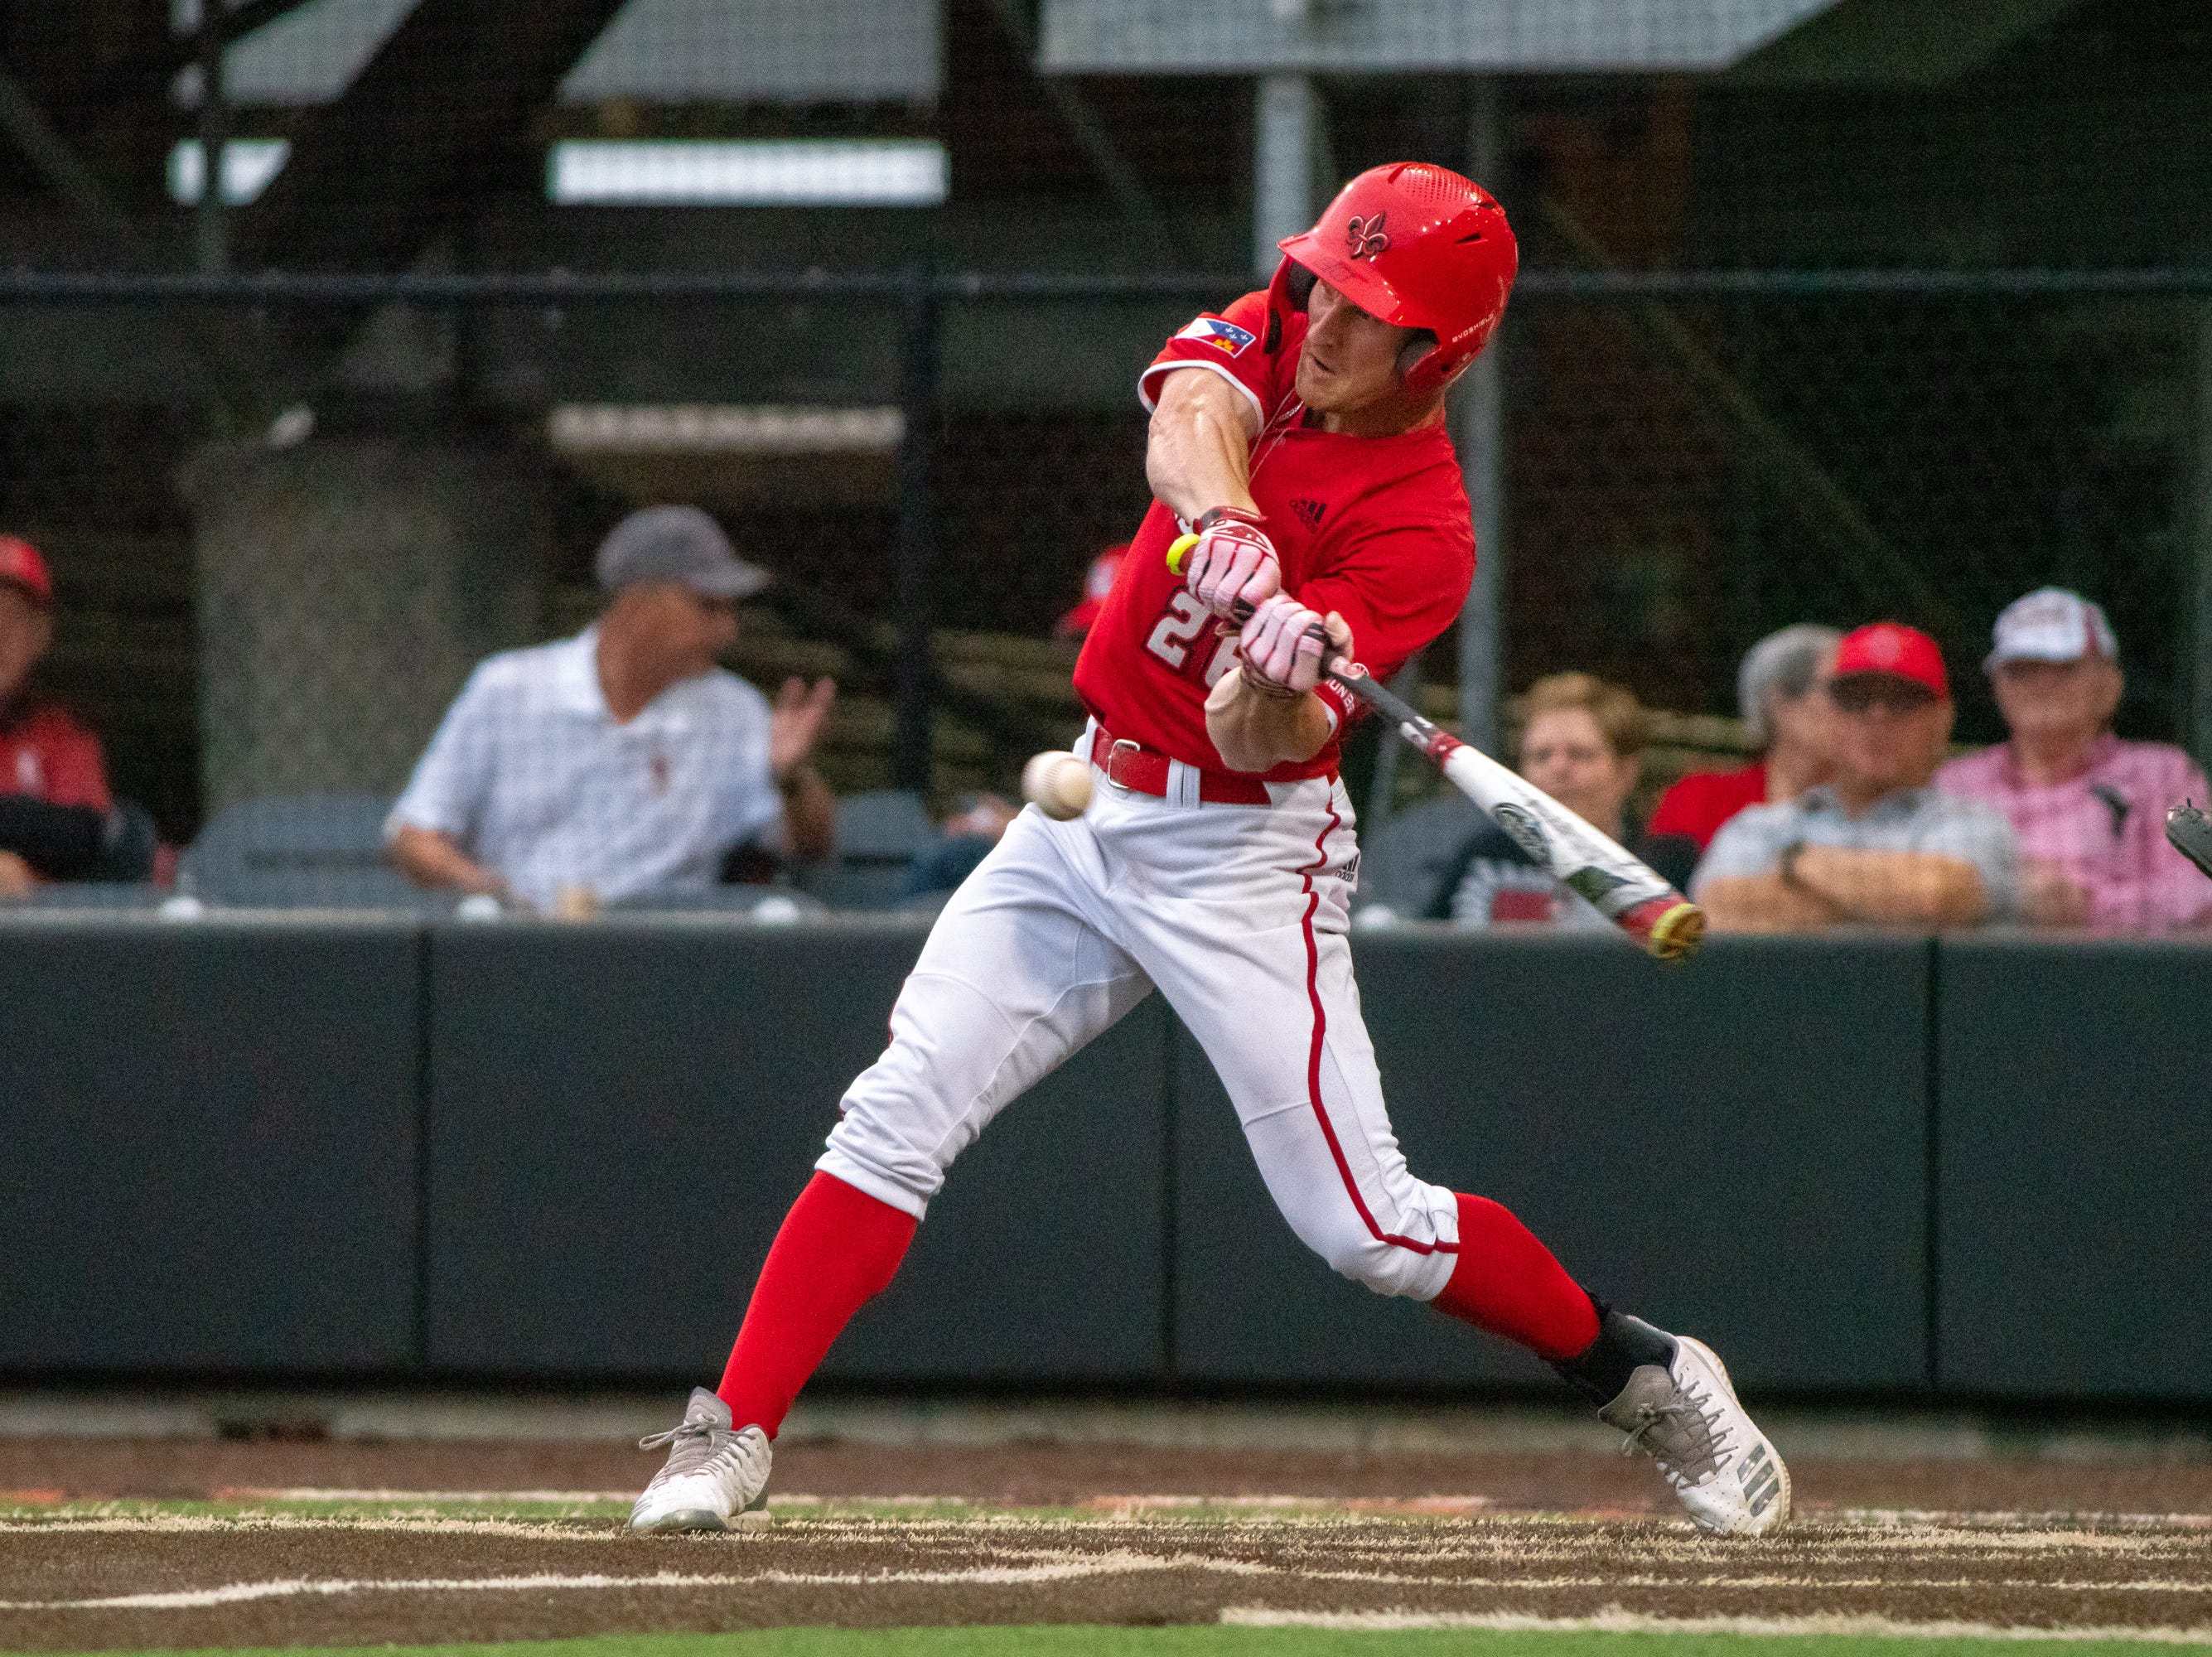 """UL's Daniel Lahare hits the ball as the Ragin' Cajuns take on the South Alabama Jaguars at M.L. """"Tigue"""" Moore Field on Friday, April 4, 2019."""